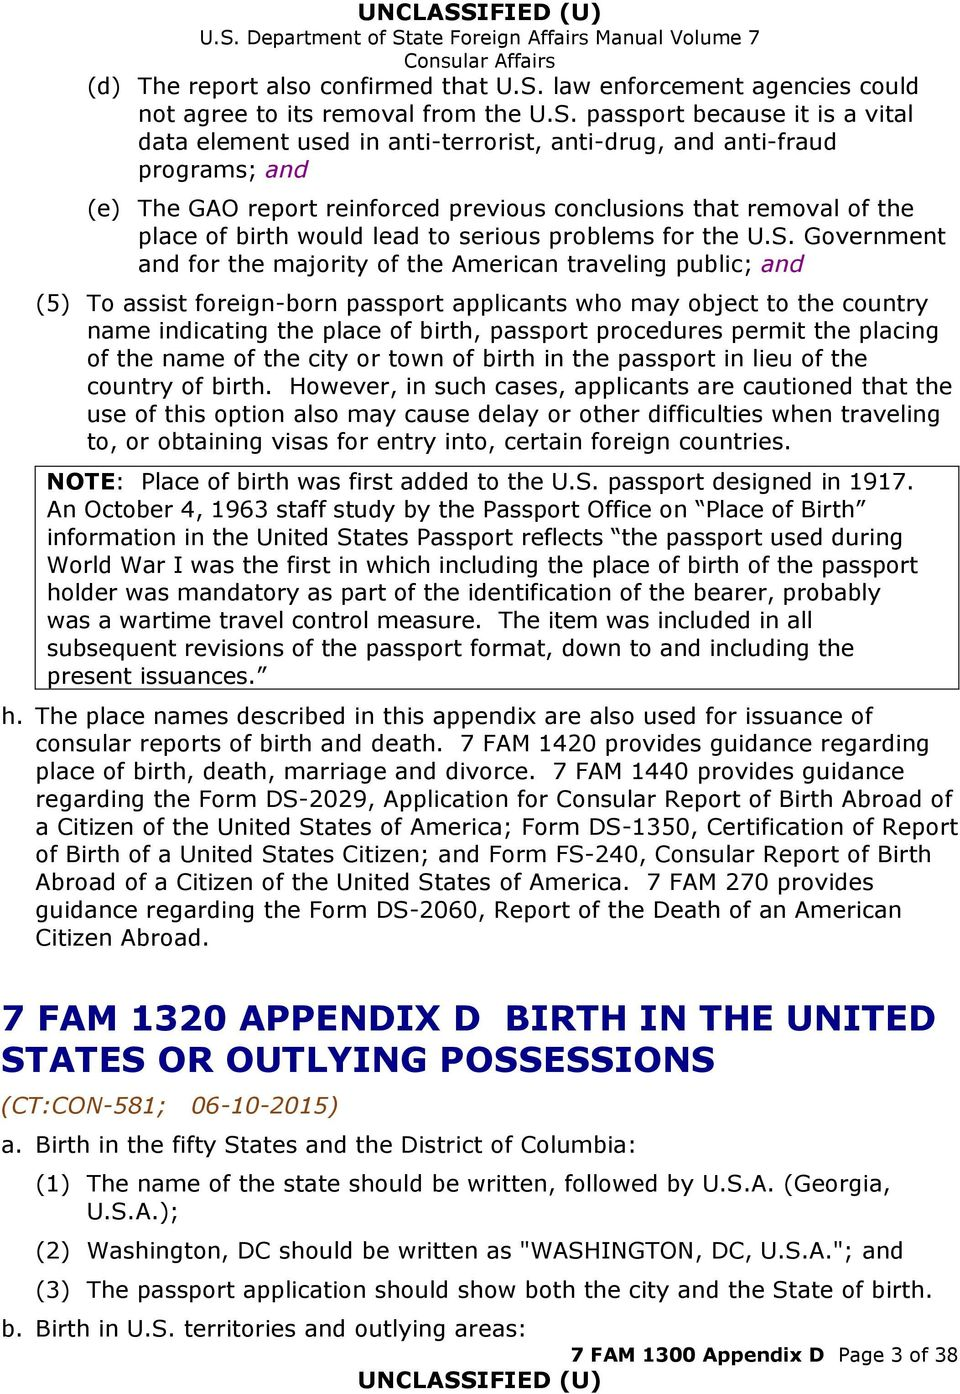 passport because it is a vital data element used in anti-terrorist, anti-drug, and anti-fraud programs; and (e) The GAO report reinforced previous conclusions that removal of the place of birth would